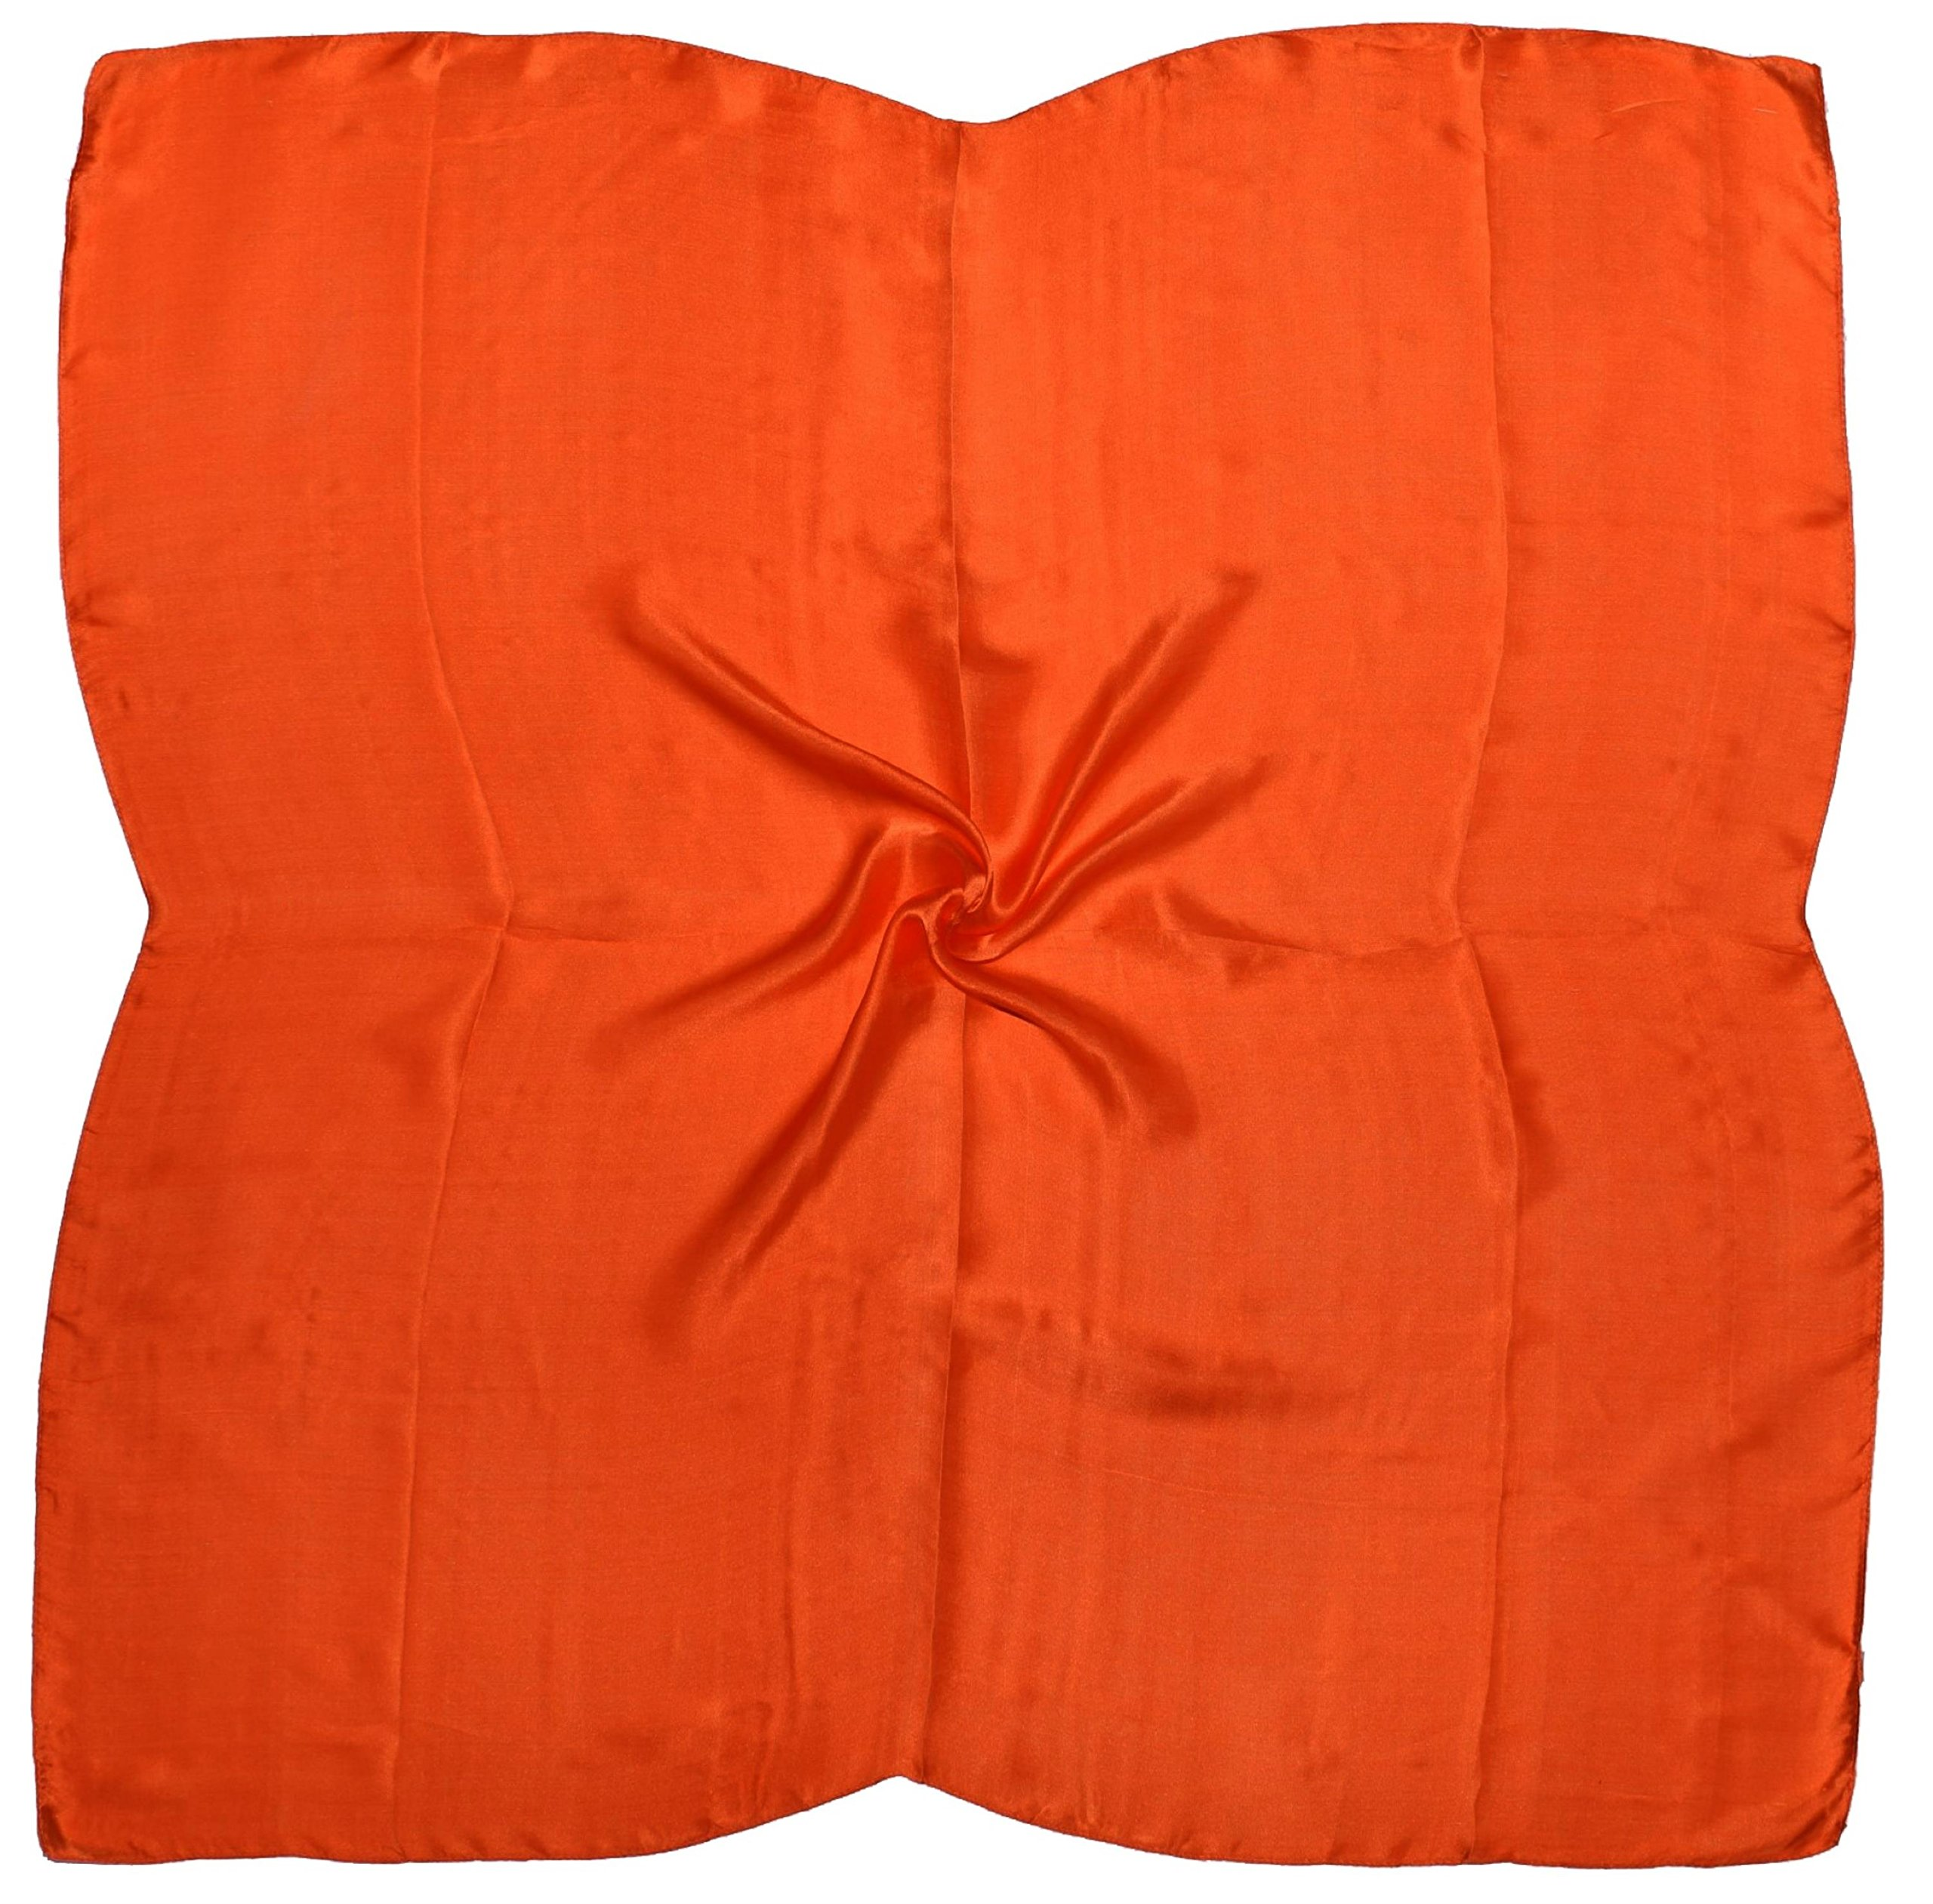 Orange Fine Silk Square Scarf by Bees Knees Fashion (Image #1)